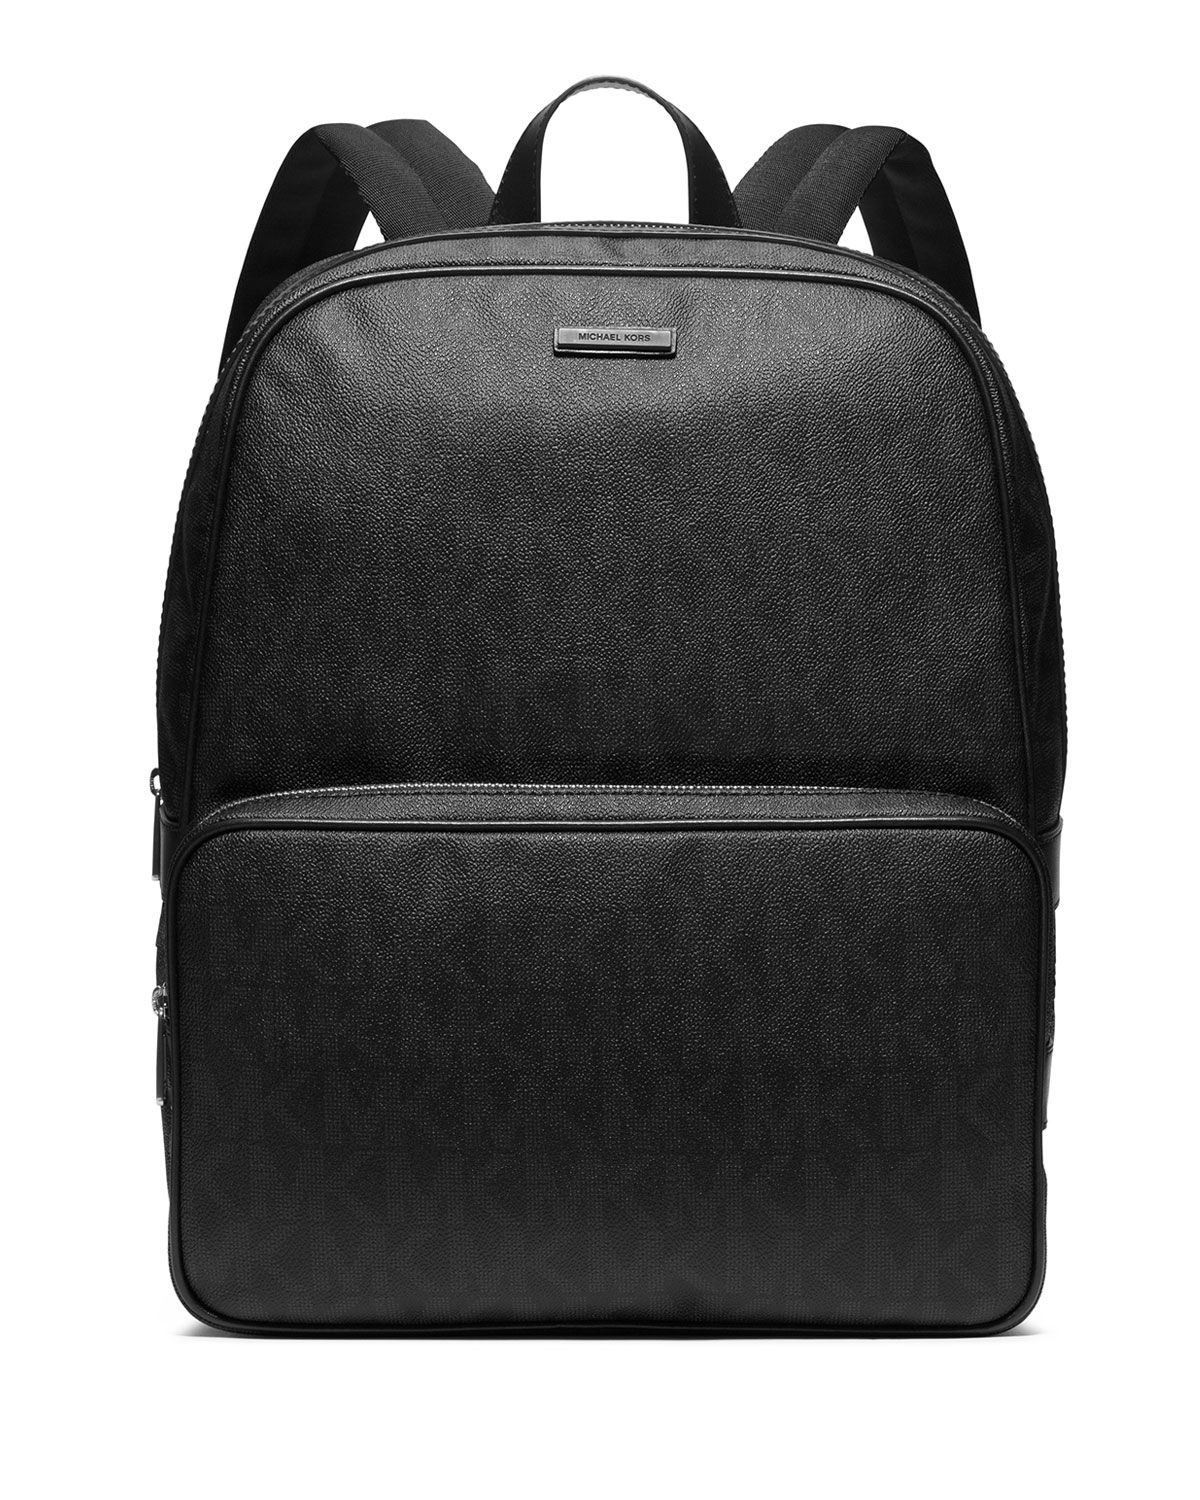 Michael kors Logo-Print Faux-Leather Backpack in Black for Men | Lyst